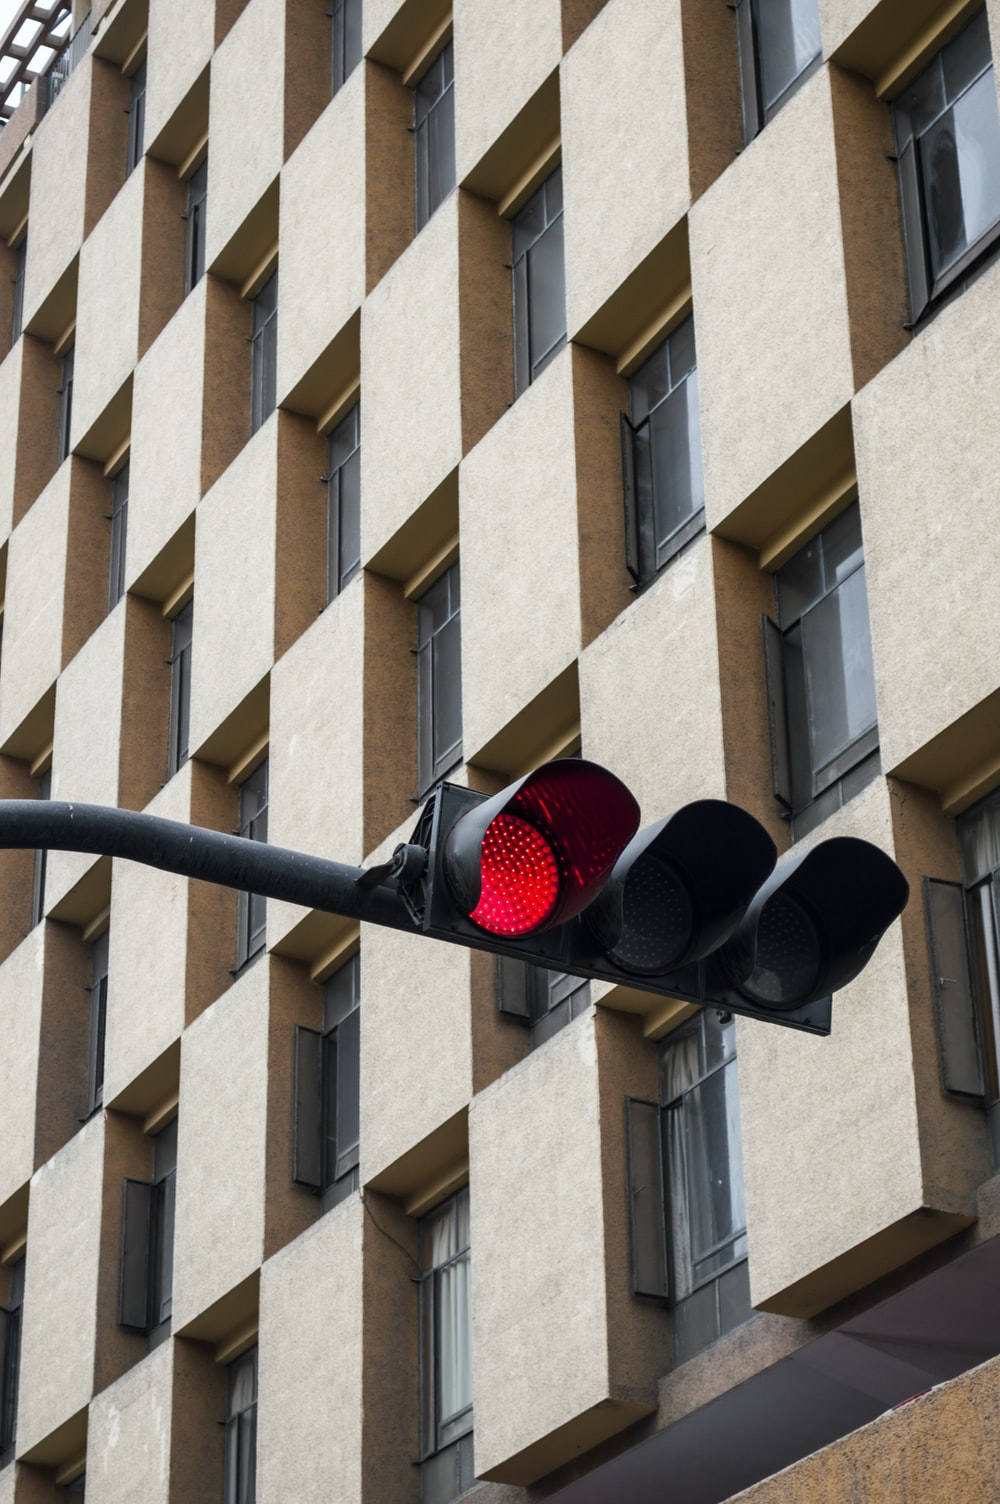 photography of traffic light on stop sign